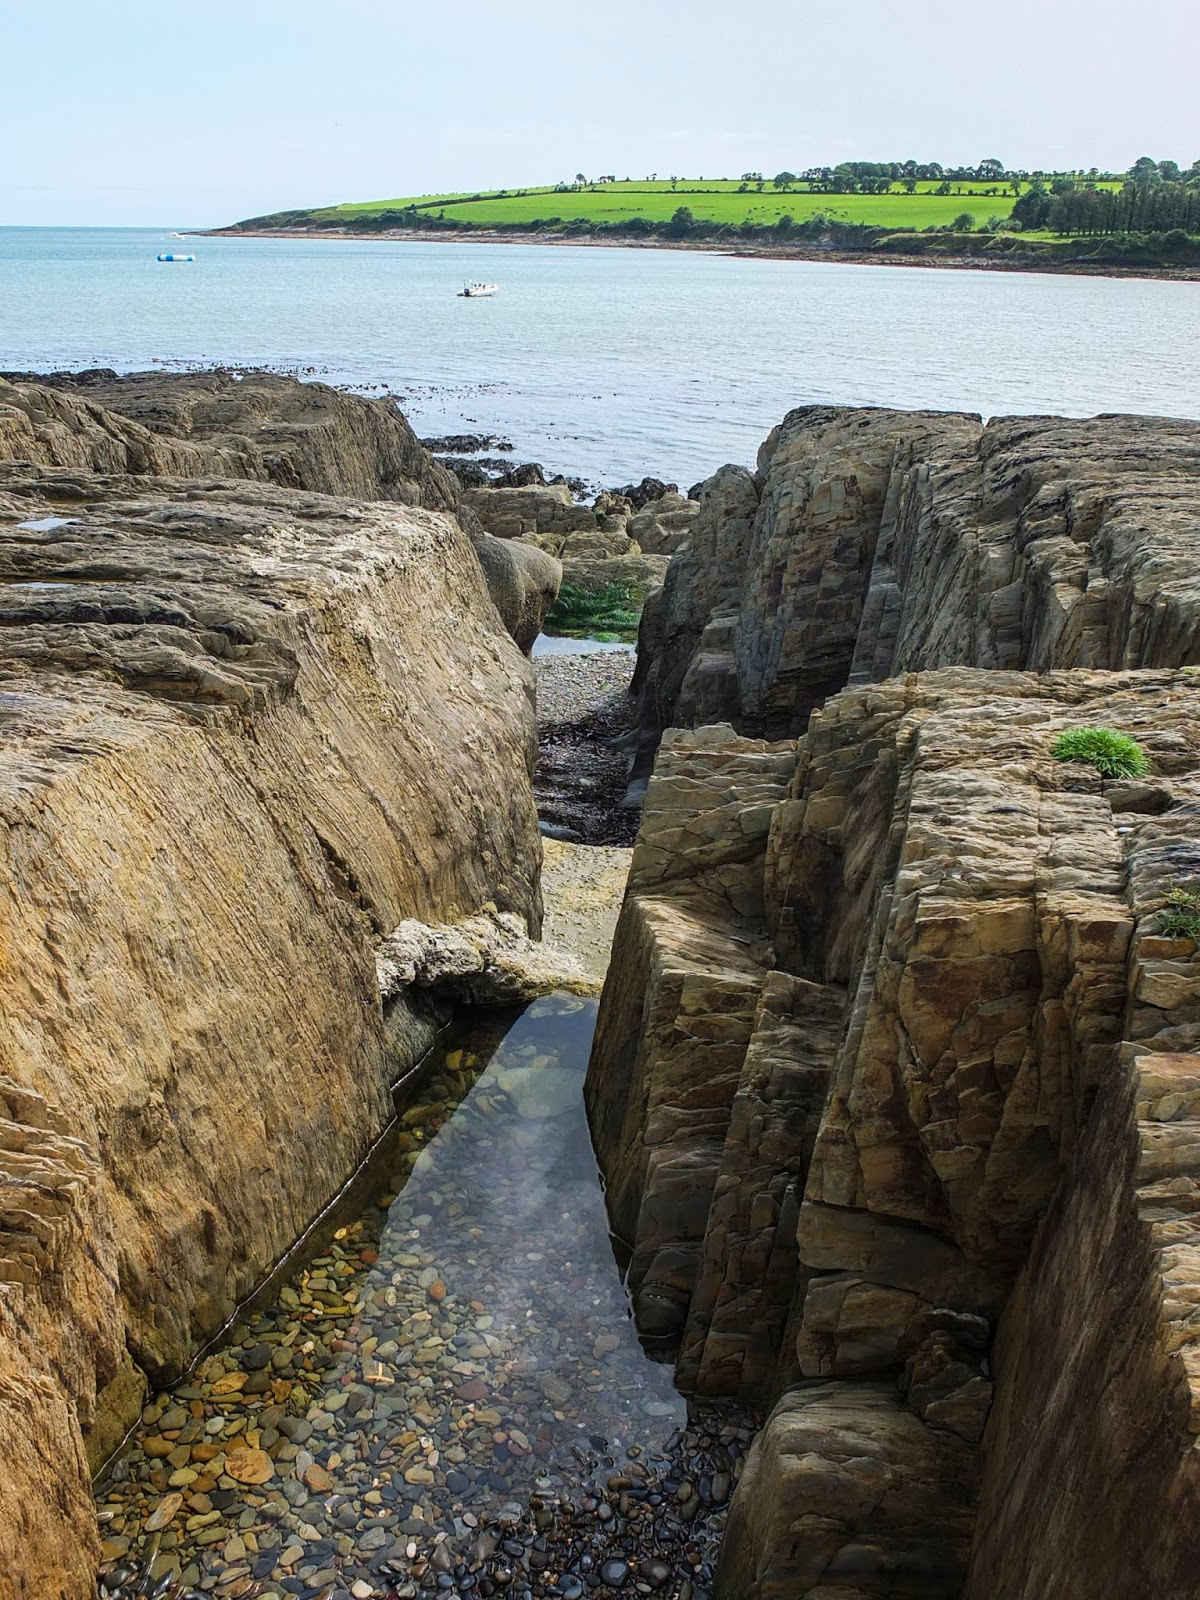 A waterpool between rocks on the beach in Fountainstown, County Cork.